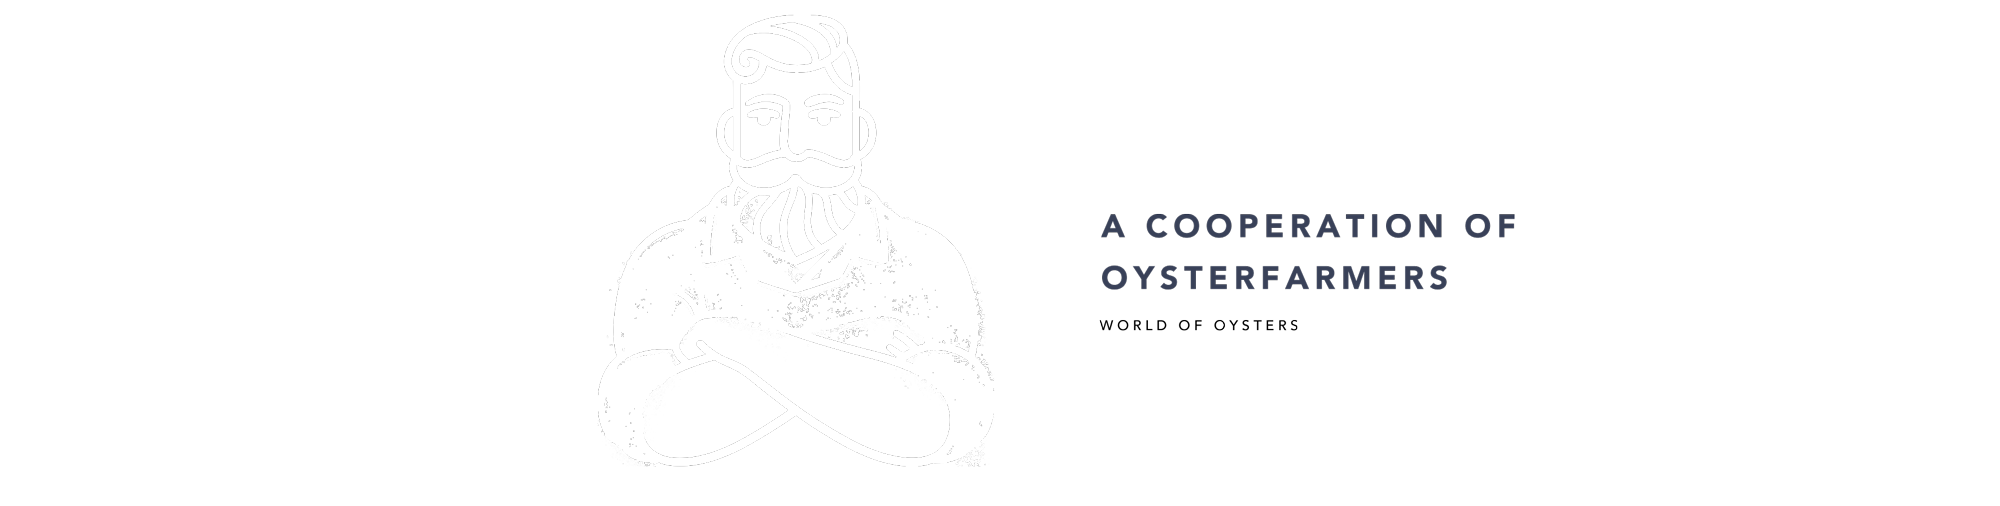 image cooperation of oysterfarmers